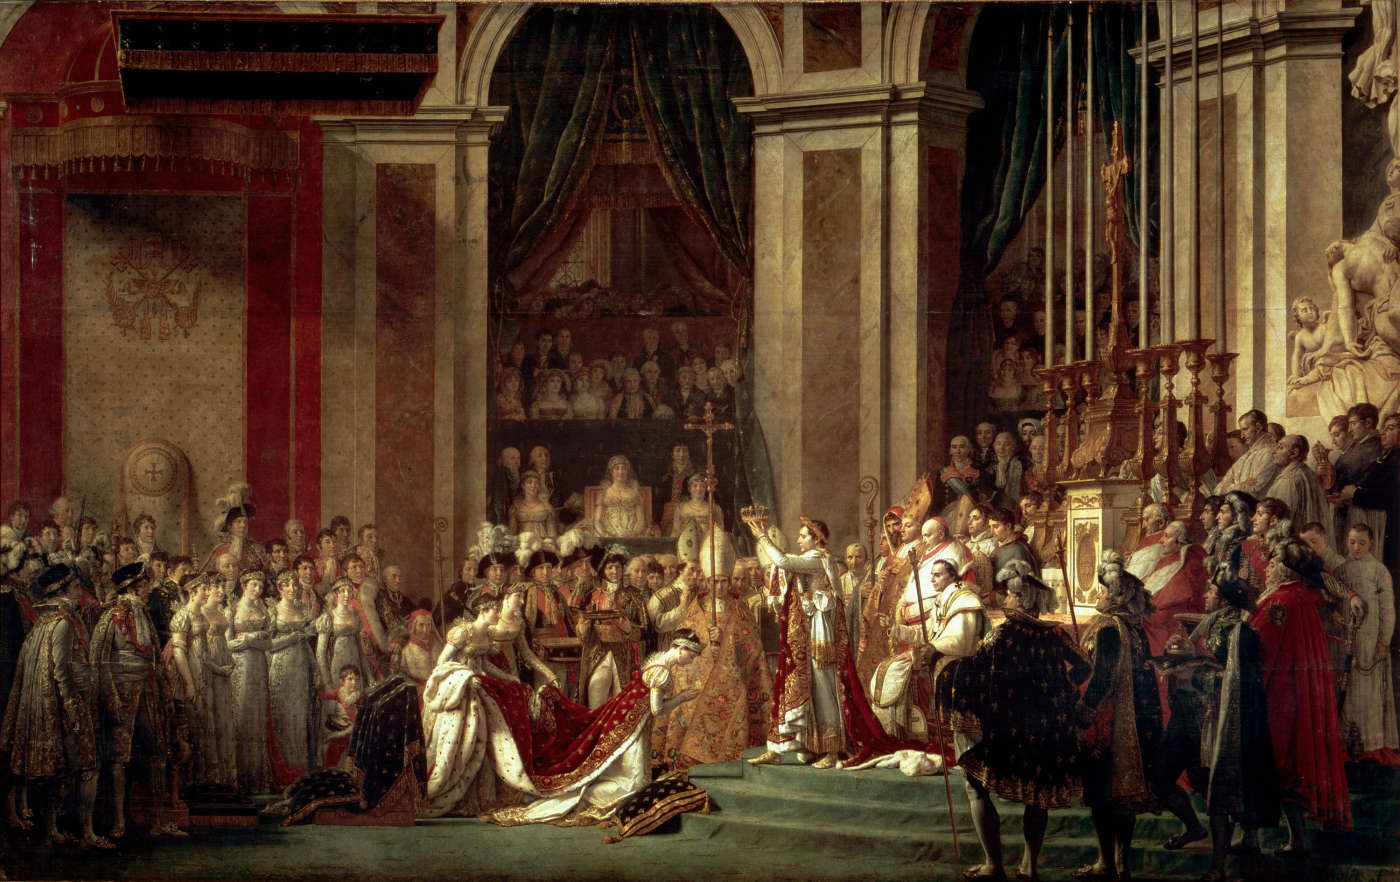 Consecration of the Emperor Napoleon I and Coronation of the Empress Josephine 1805. 629 x 979 cm